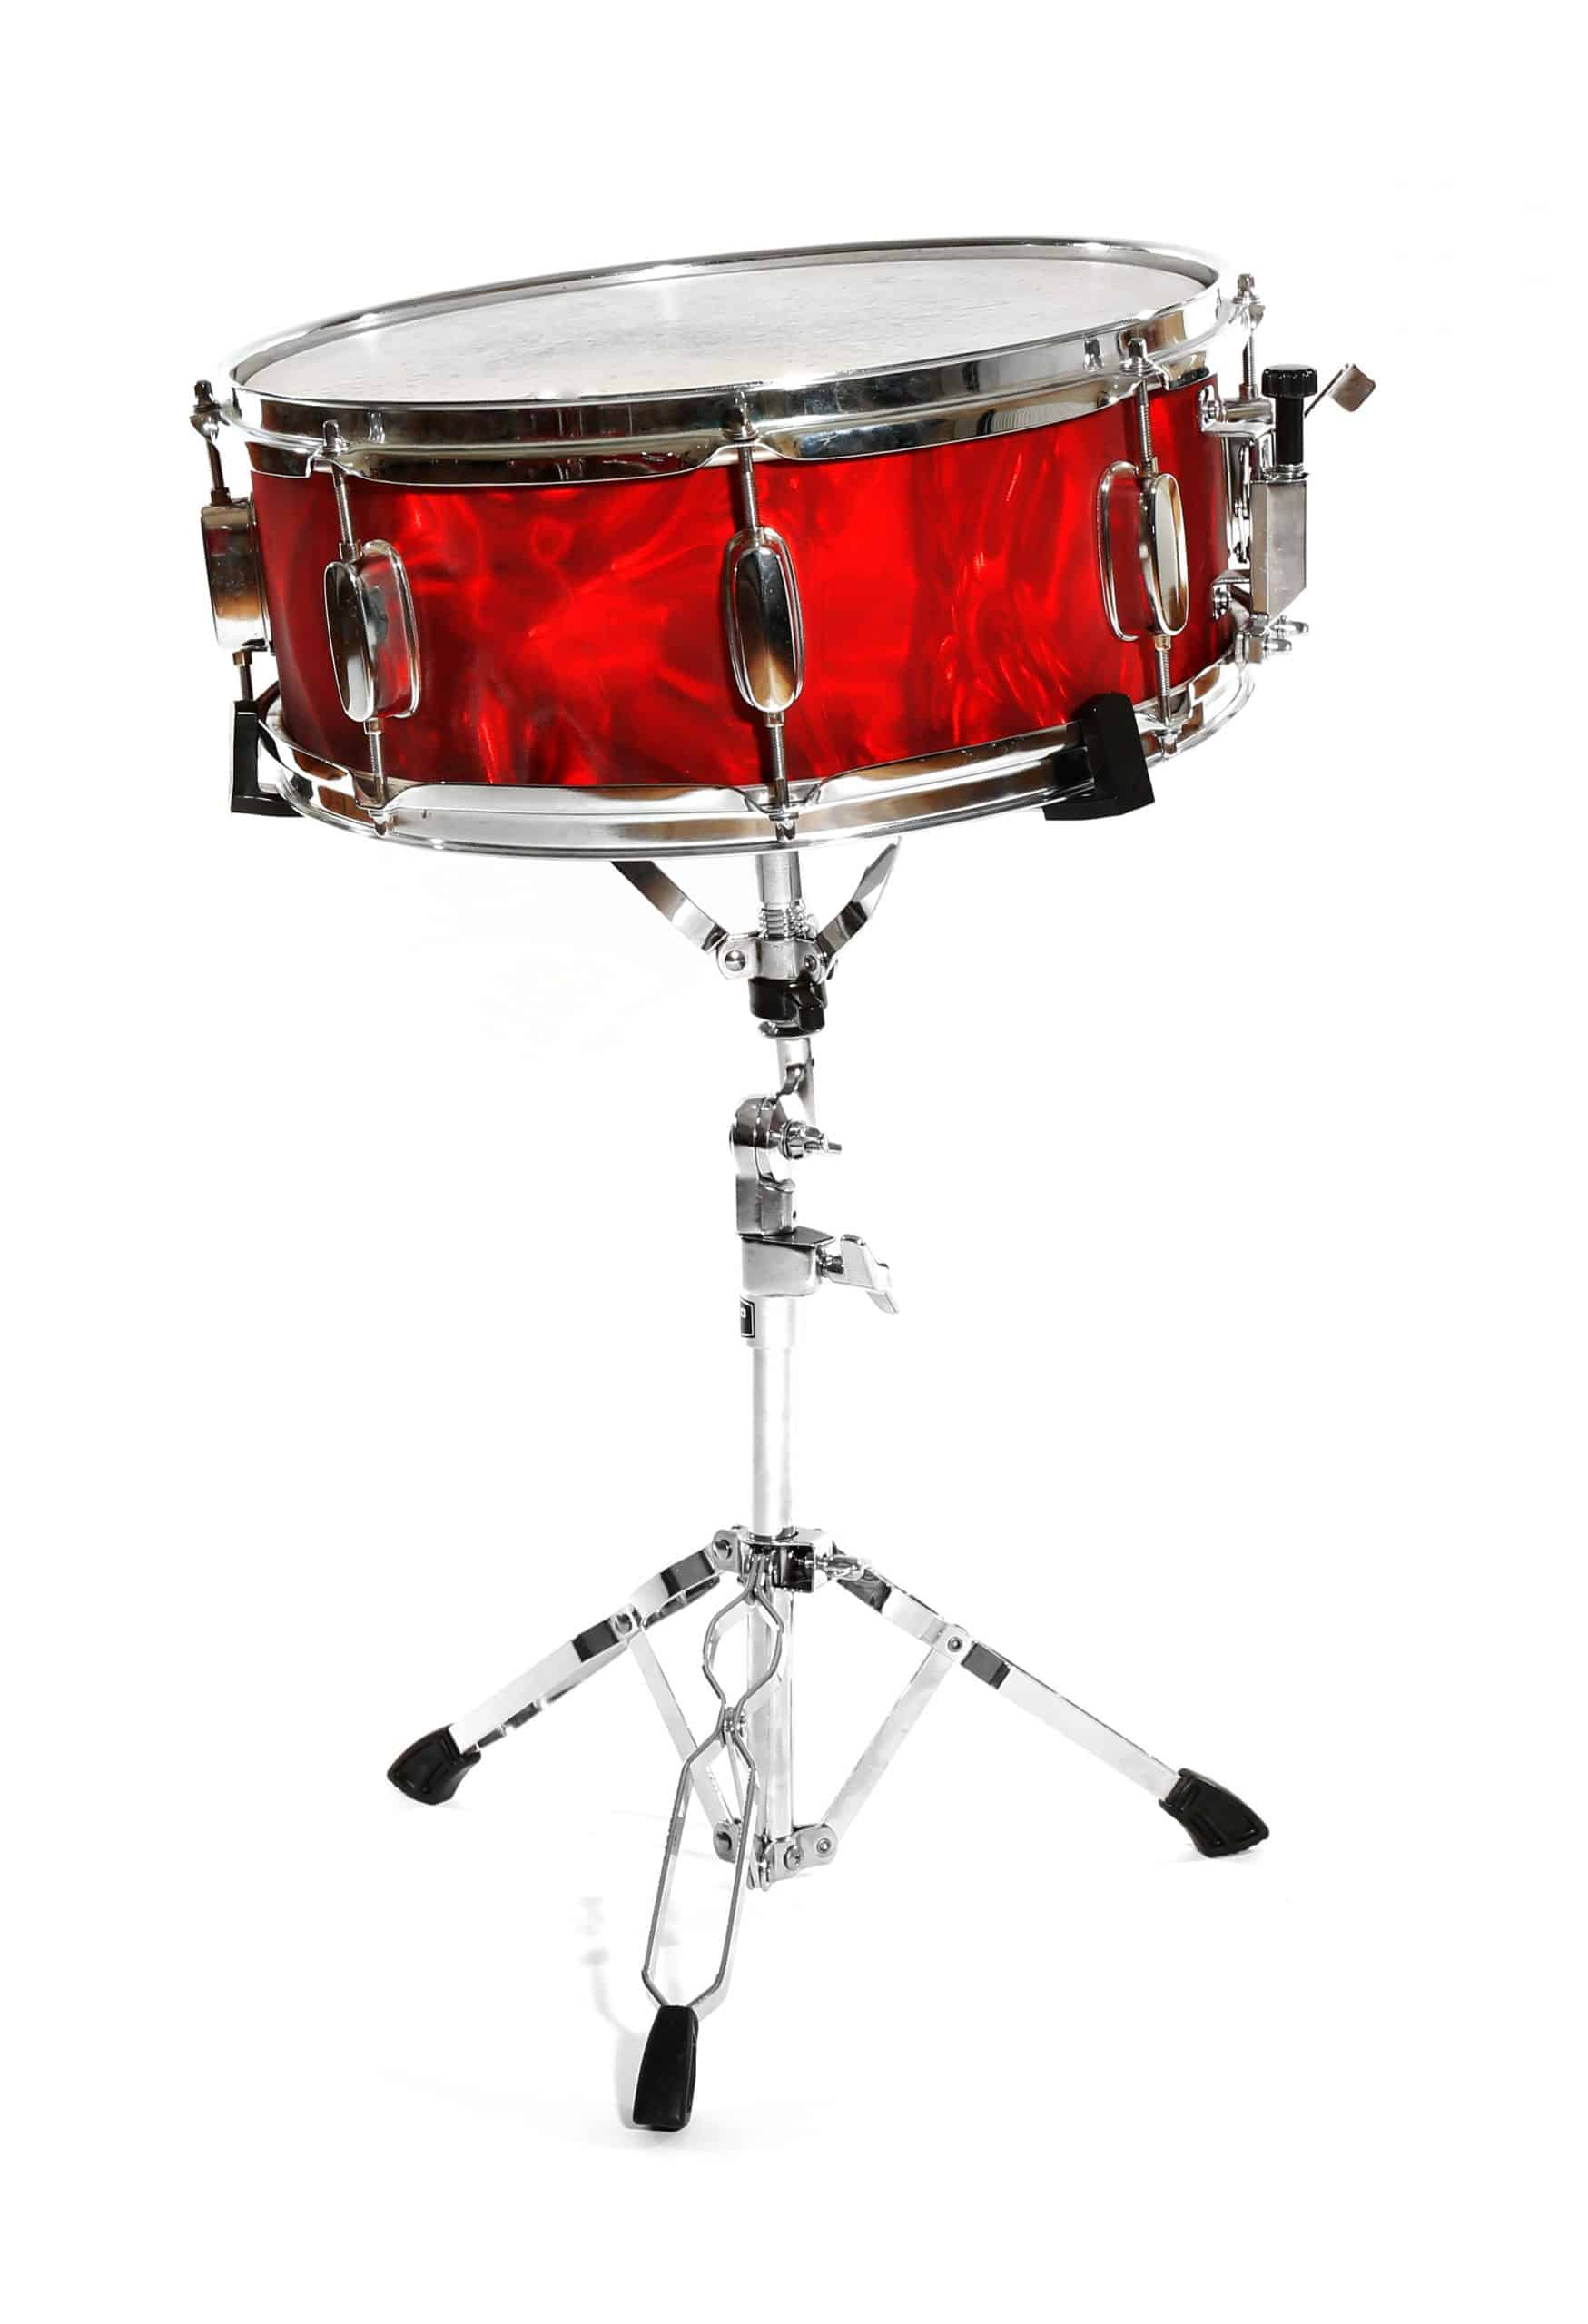 Example of snare drum